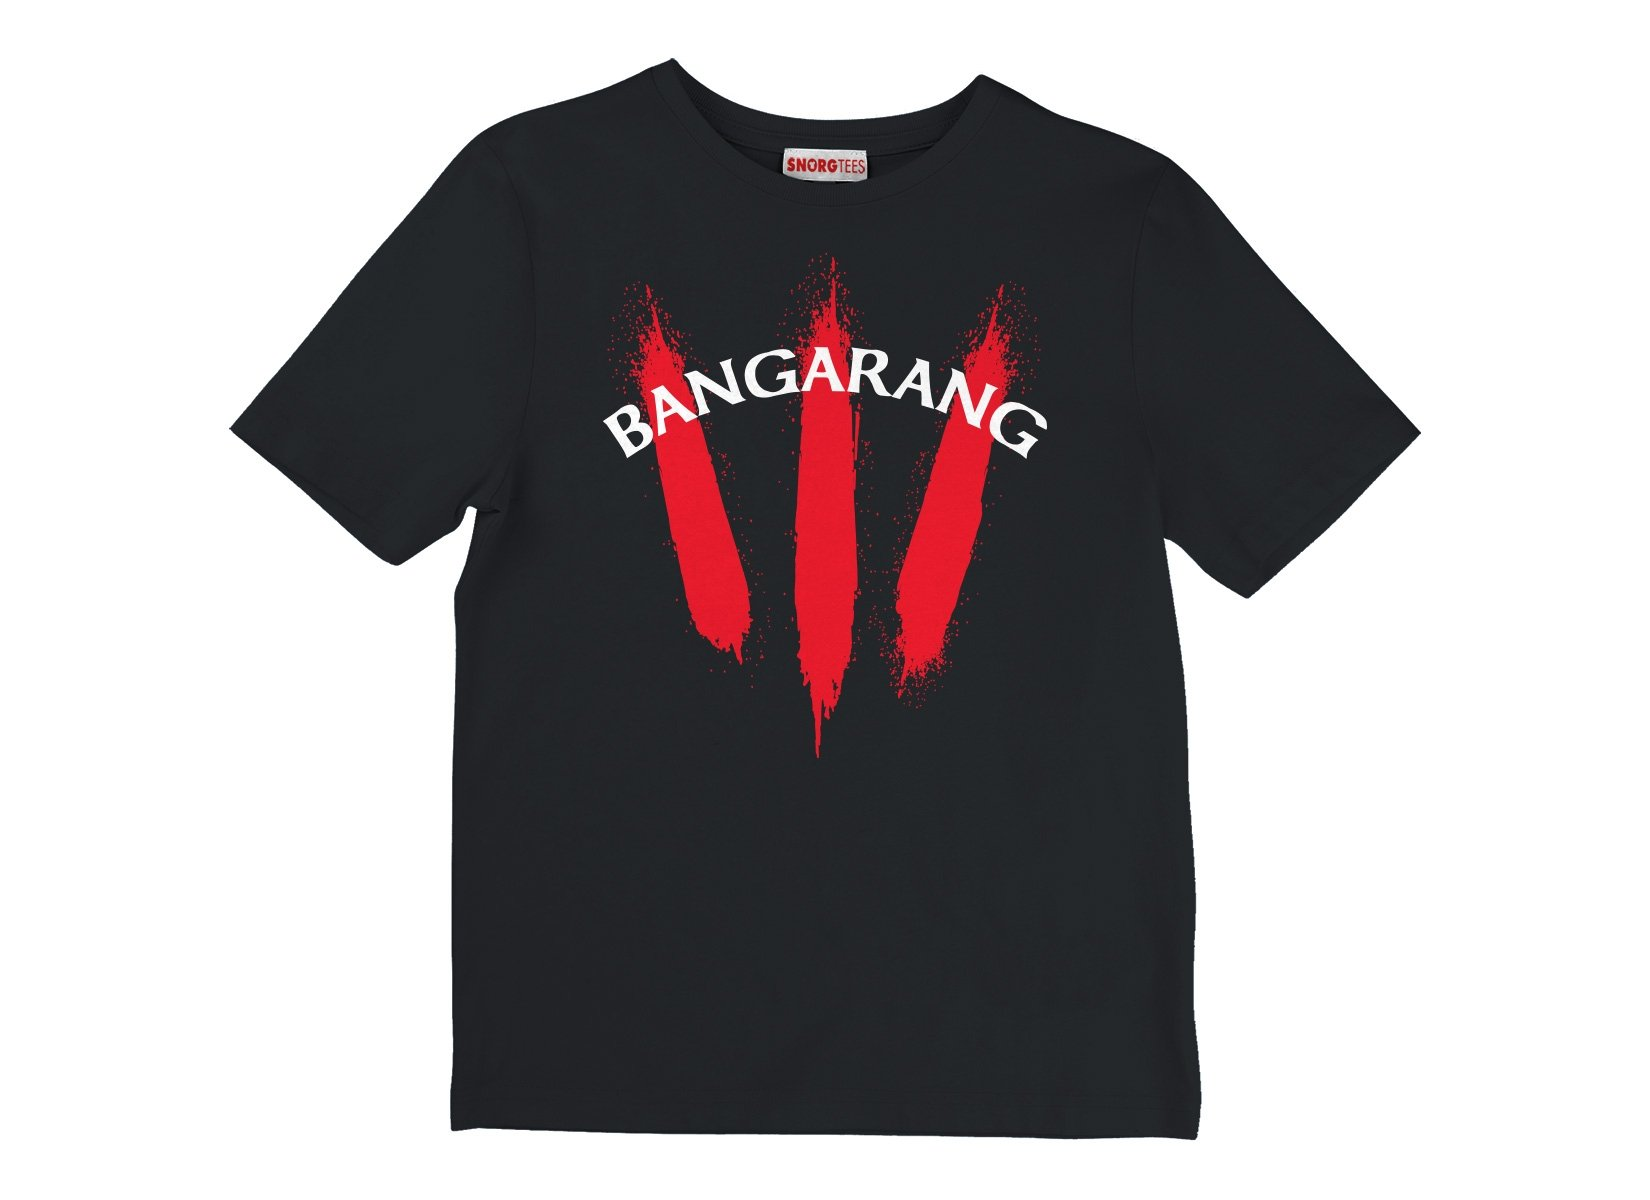 Bangarang on Kids T-Shirt